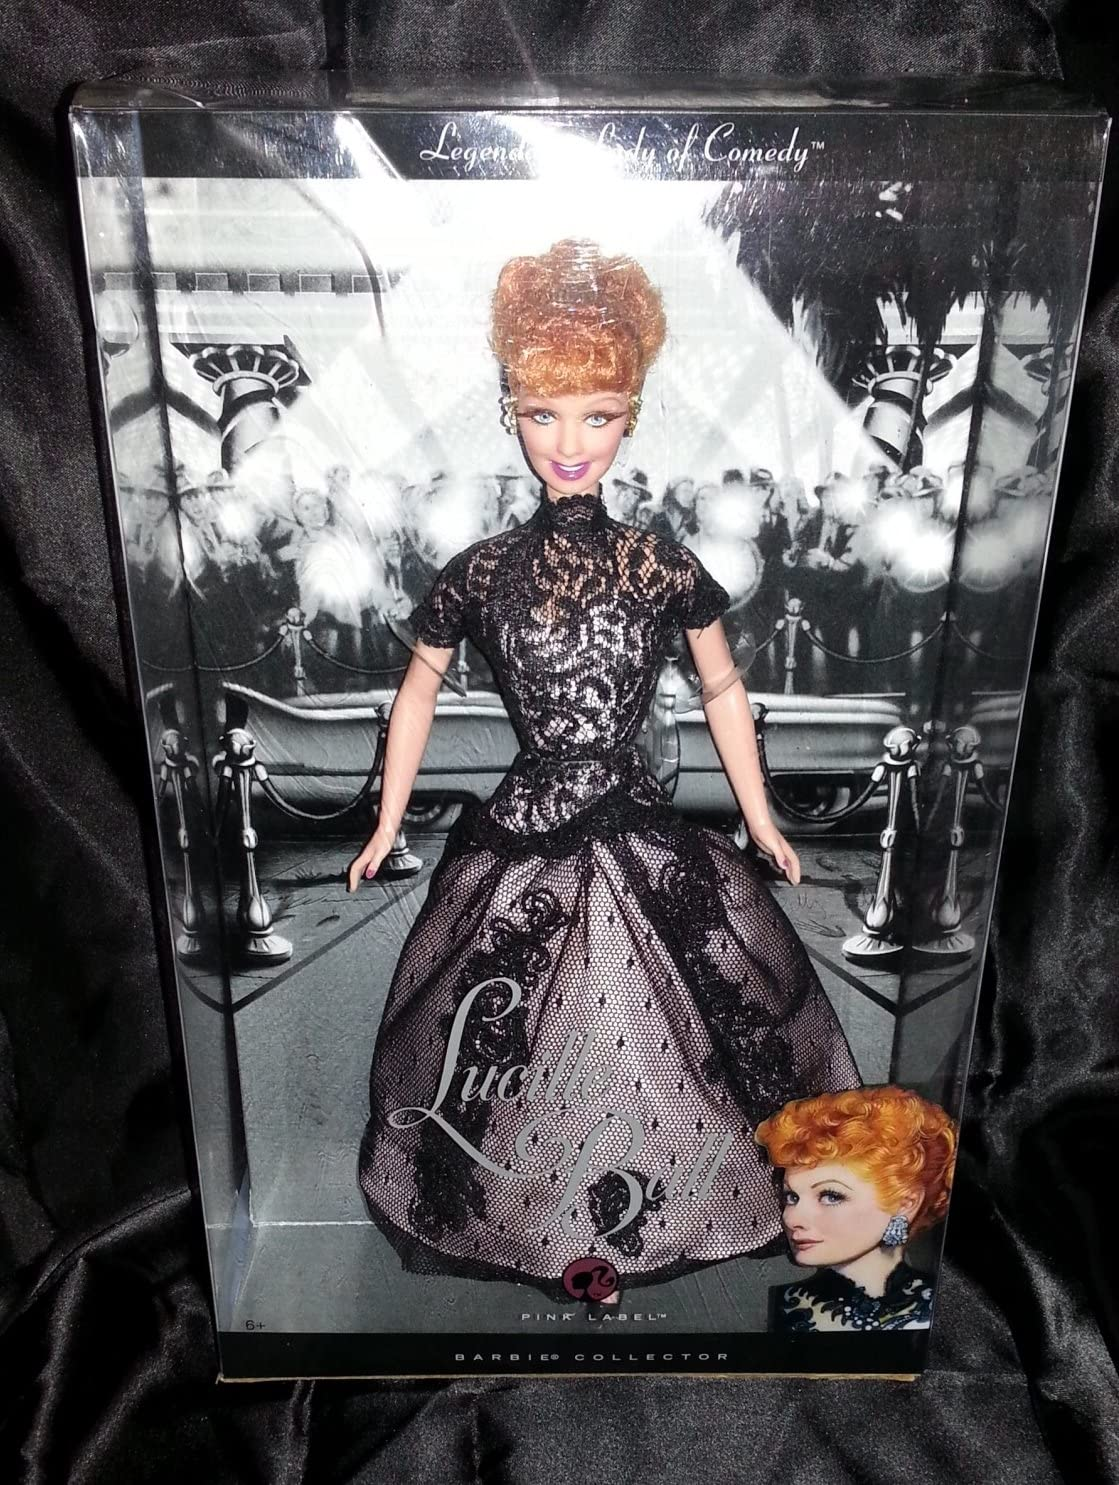 Mattel 2008 Lucille Ball Legendary Las Vegas Mall Lady Comedy Mail order cheap in Doll Black of